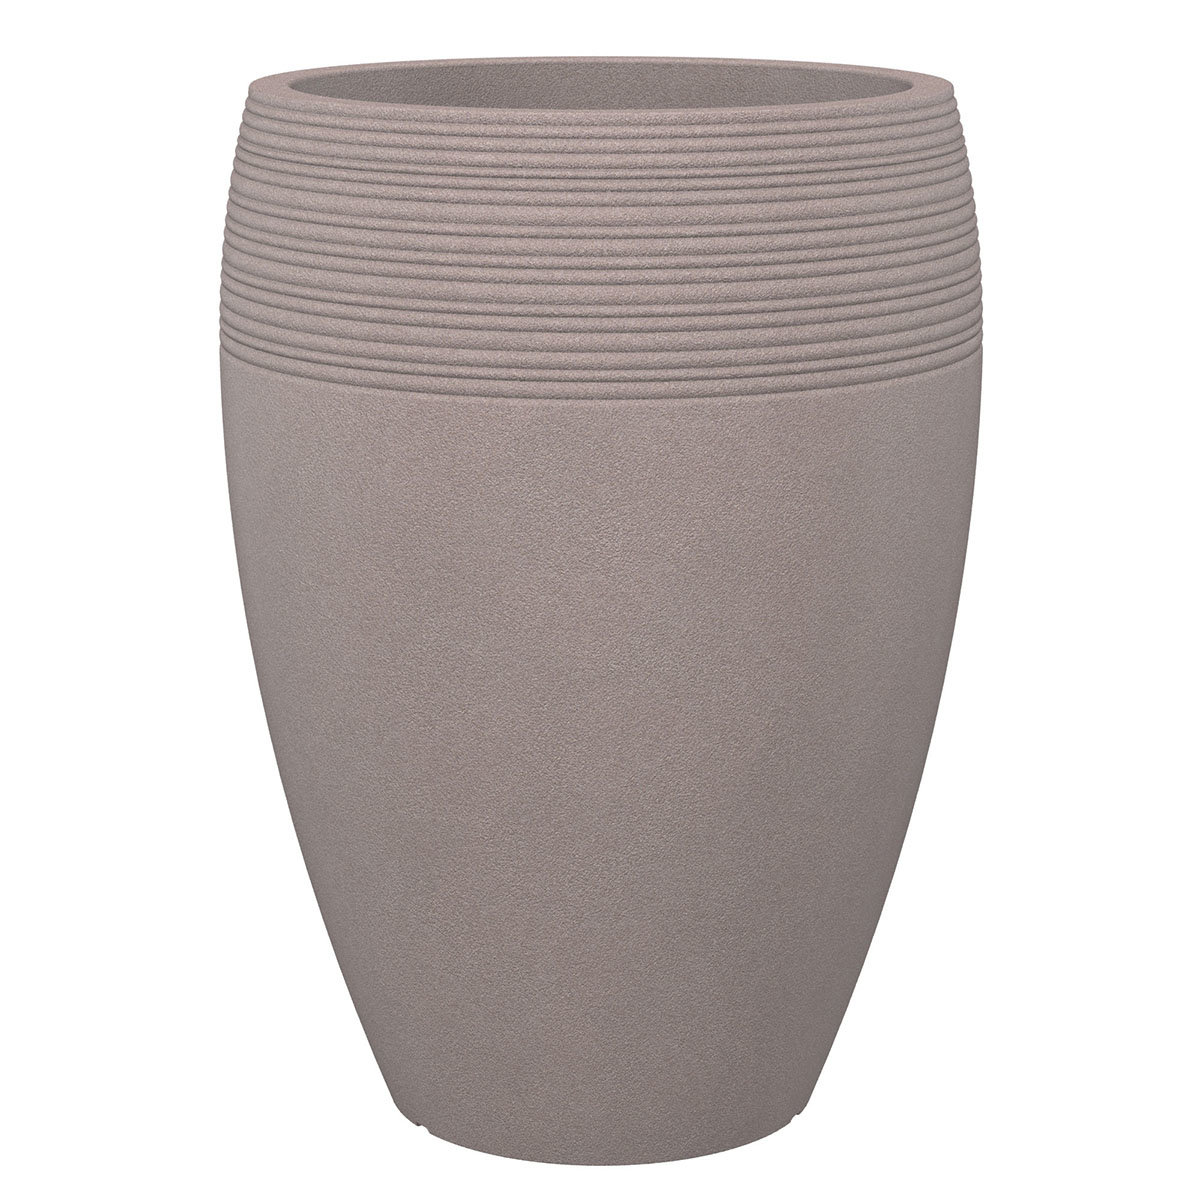 Pflanzkübel High Lineo, 65 cm, Taupe